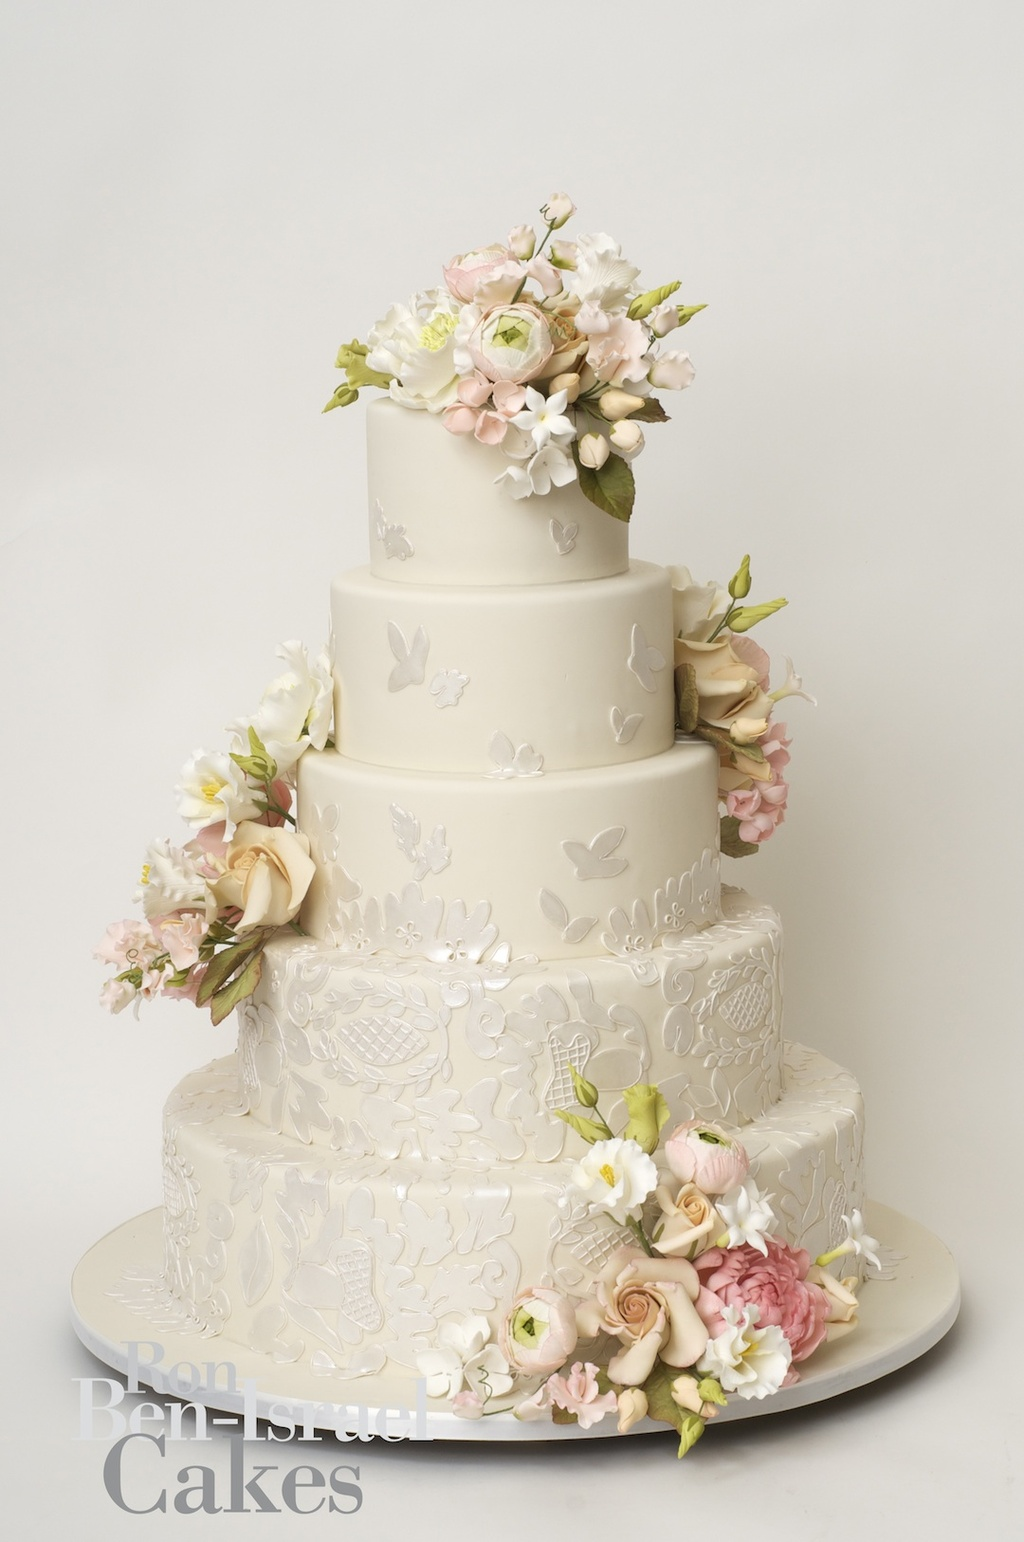 Wedding Cake Inspiration Ron Ben Isreal Cakes Ivory With Pastel Flowers